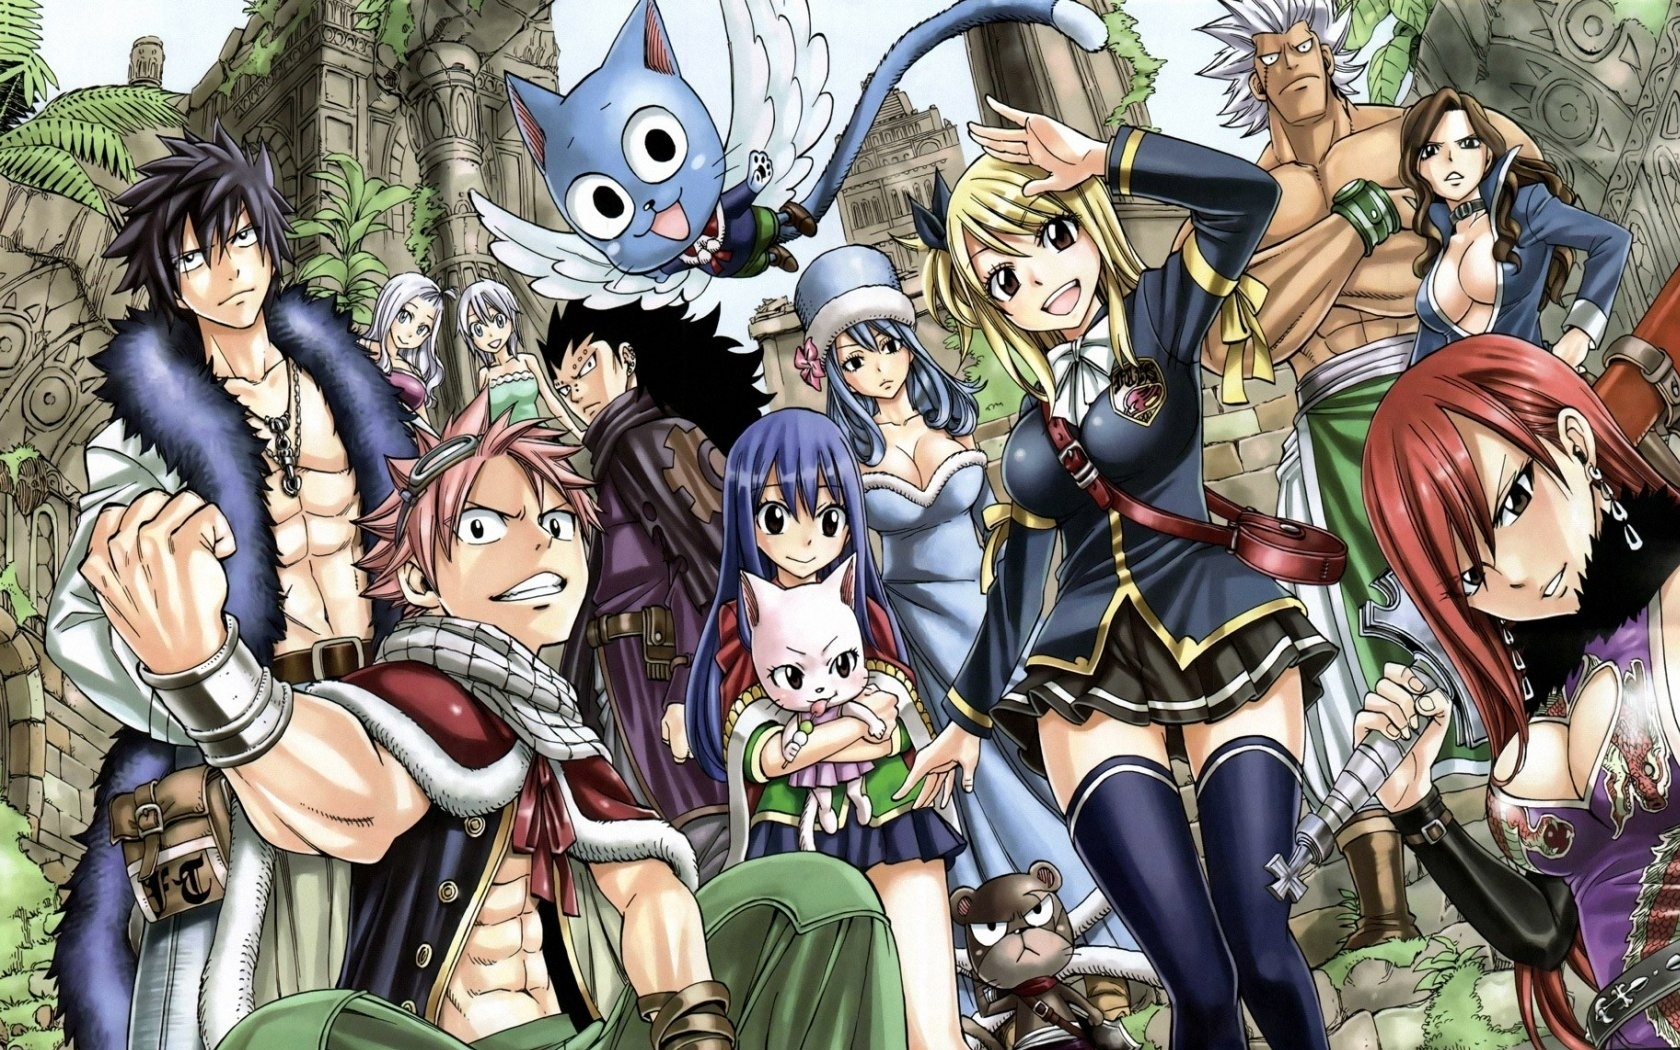 fairy tail - wallpaper - group - 10 000 fonds d'écran hd gratuits et